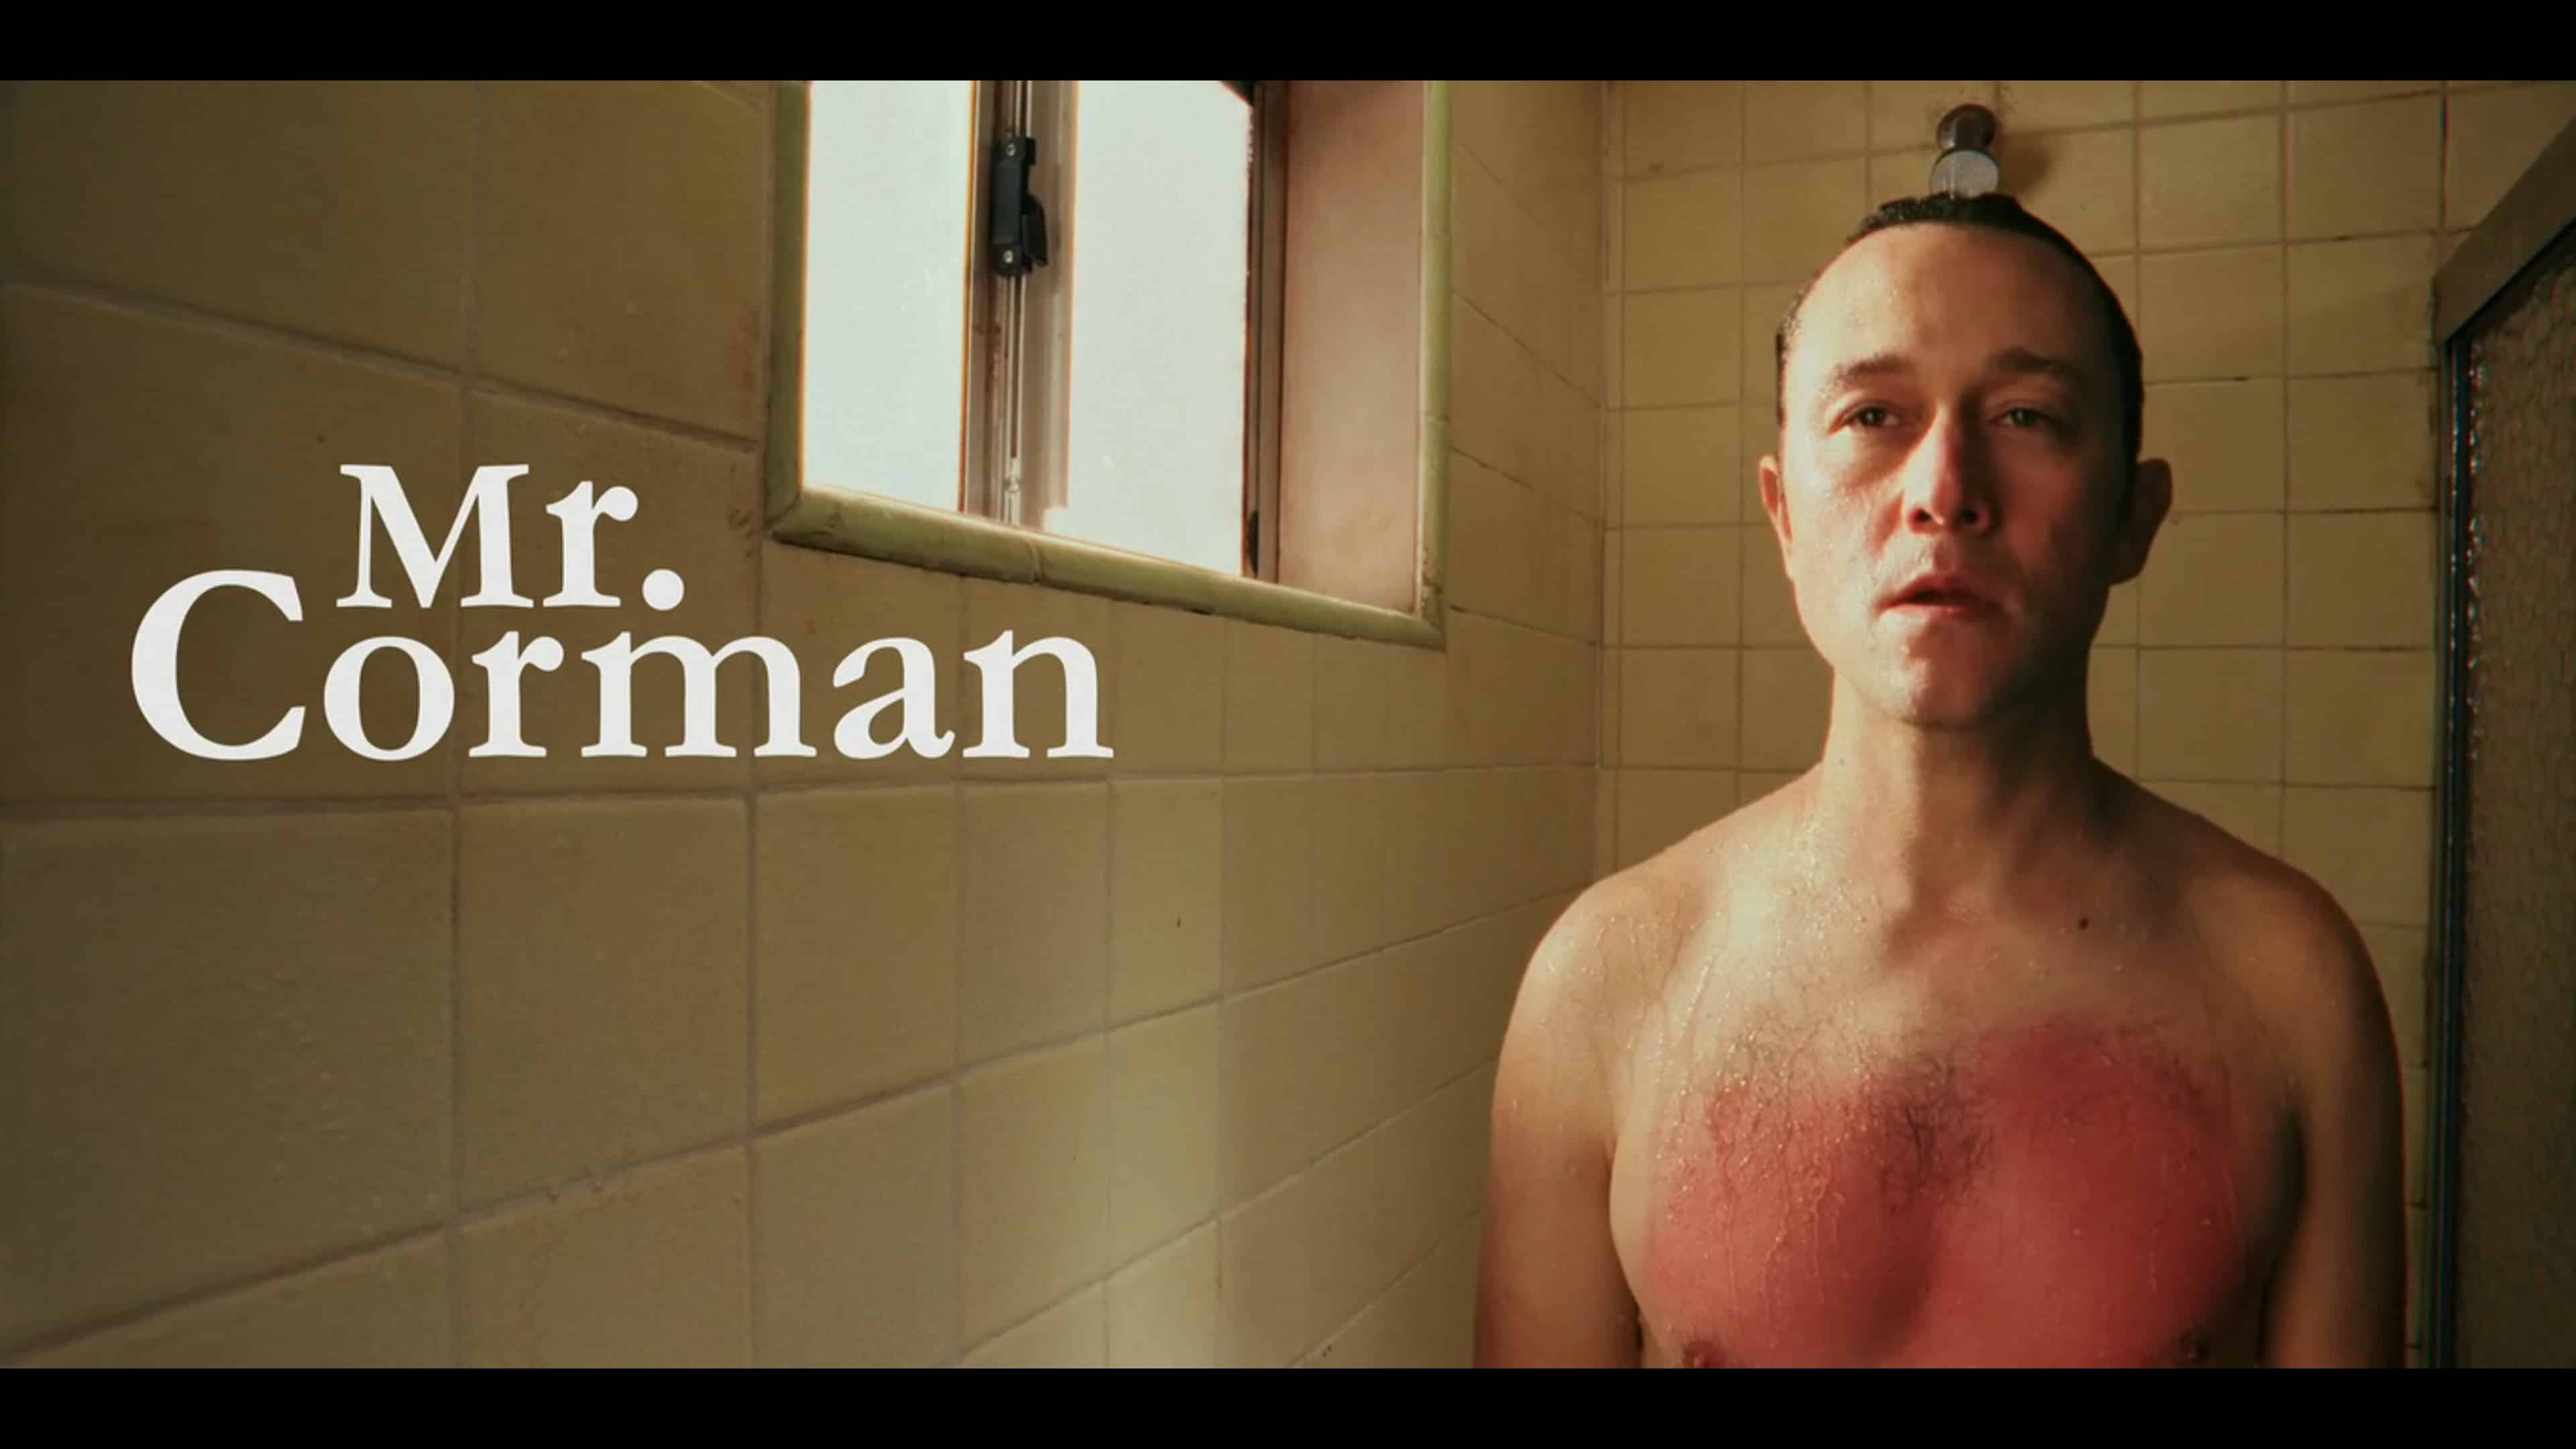 Mr. Corman in the shower